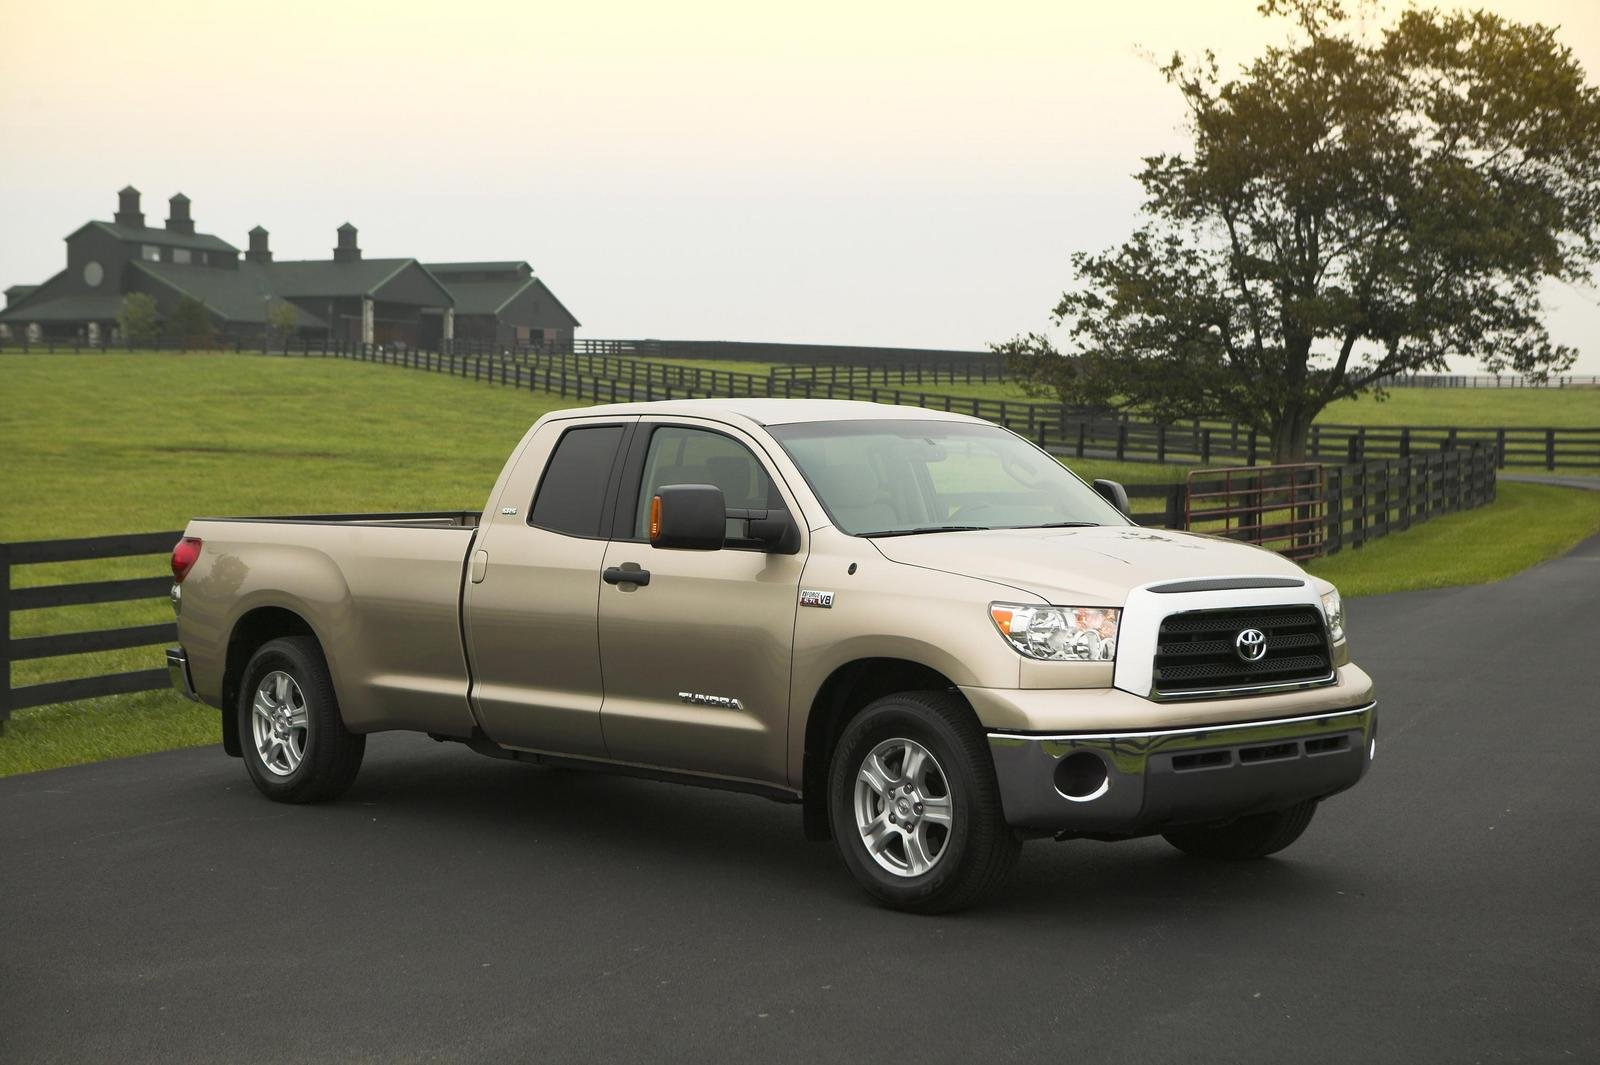 2007 tundra full size pickup pricing announced picture 141759 car news top speed. Black Bedroom Furniture Sets. Home Design Ideas